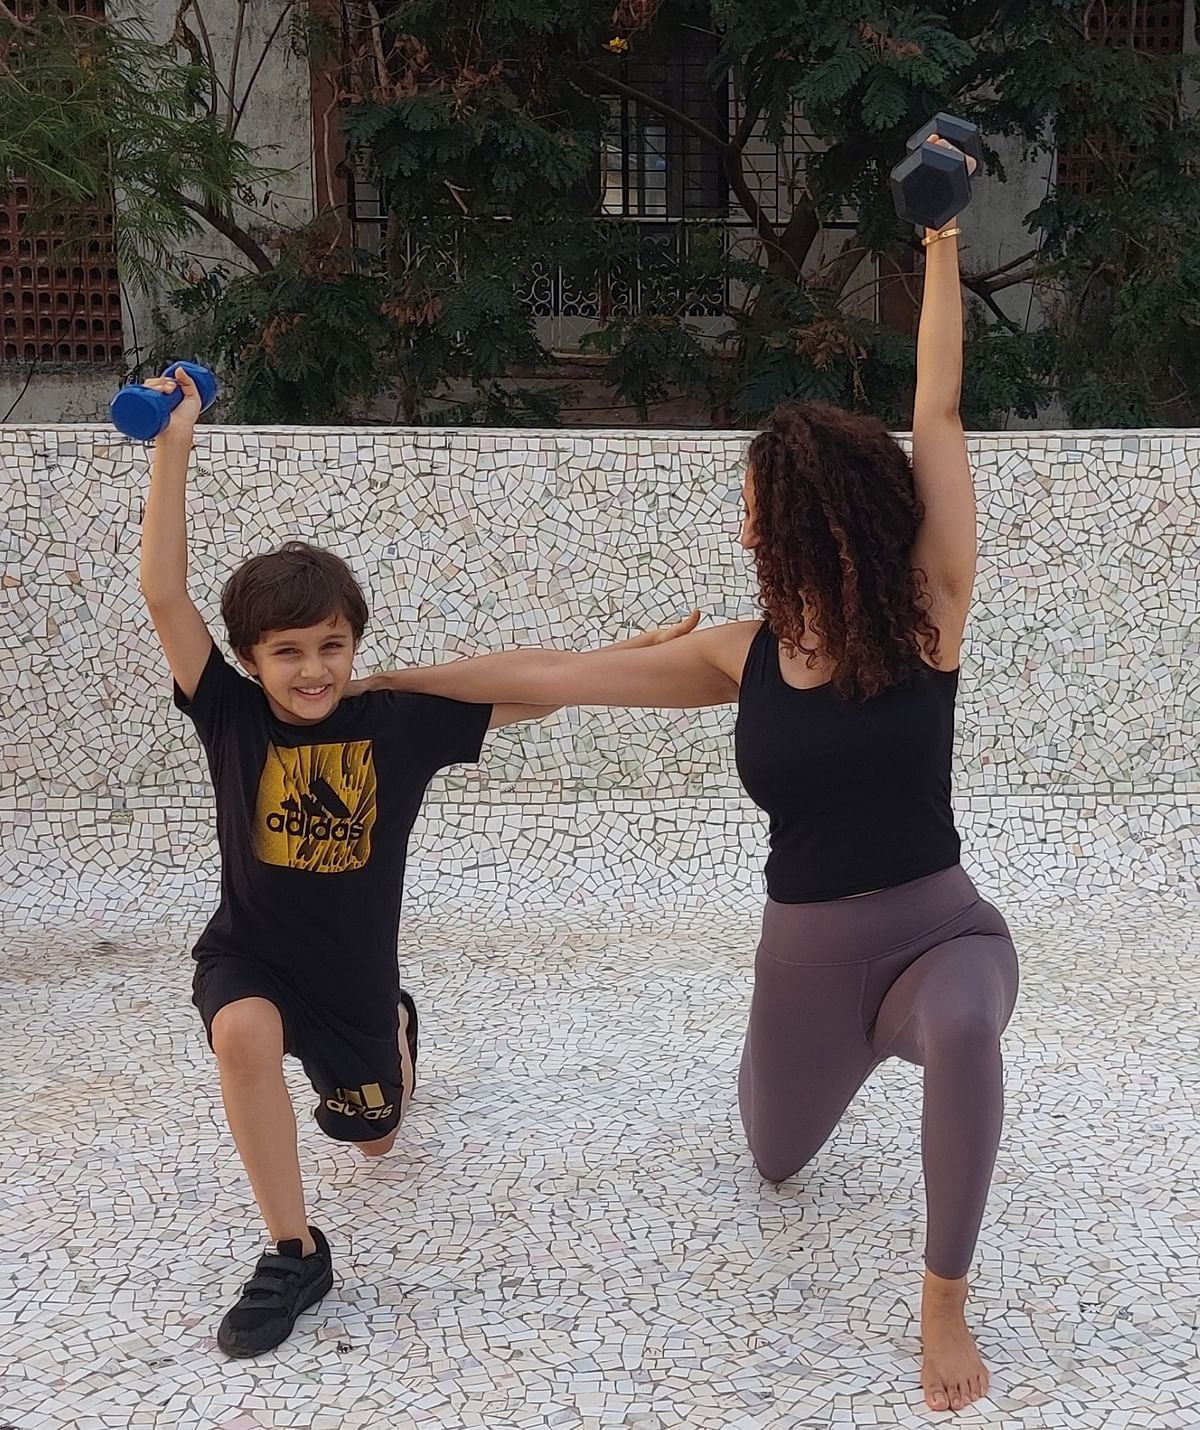 Movement Coach: Parents, keep your kids engaged amid pandemic, here's how